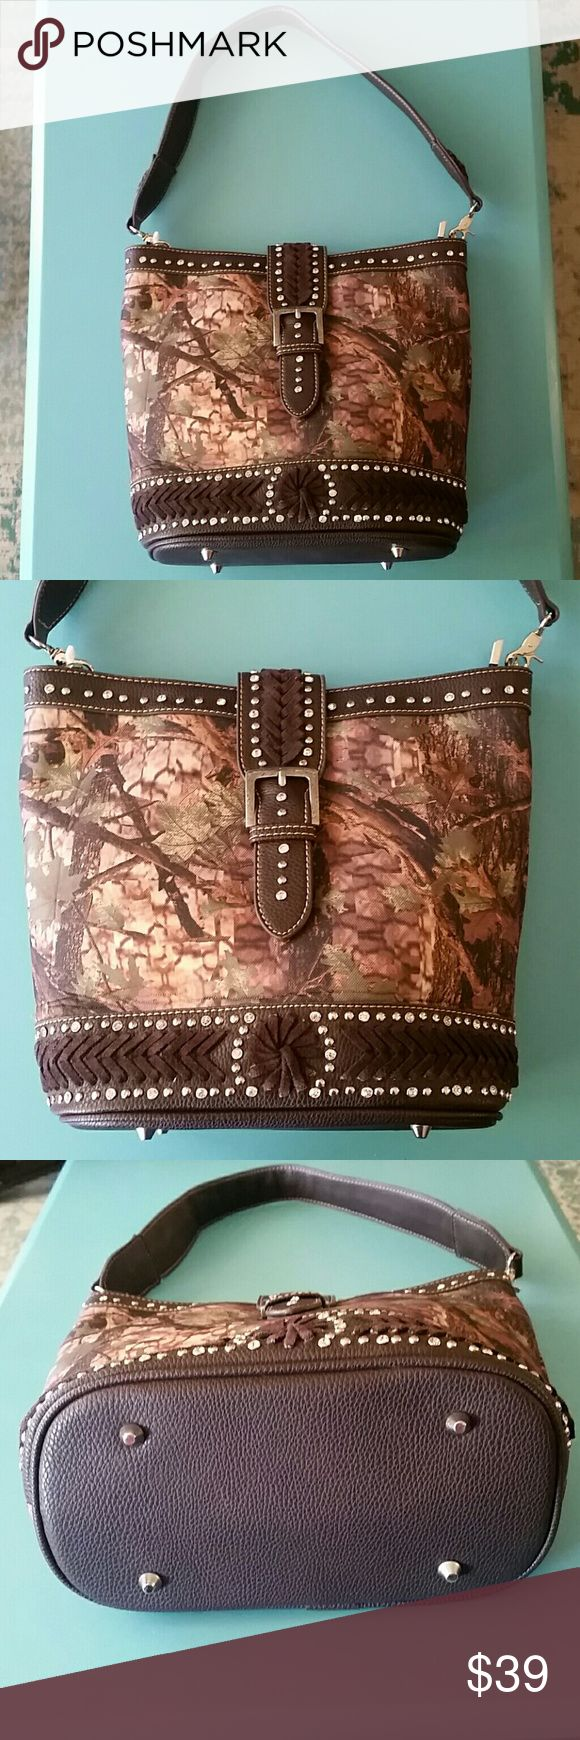 """Montana West Camo Concealed Handgun Purse Gorgeous Montana West Camo Concealed Handgun Purse. Camouflage colors. Magnetic buckle closure, camo material on front & back of purse with lots of silver stud & faux diamond bling! Has open pocket on back of purse with zipper concealed handgun pocket. Inside has two large compartments with zipper pocket in middle, open pockets on one side & zipper pocket on opposite side. Lots of room for all of your essentials and more. Shoulder strap has 12"""" drop…"""